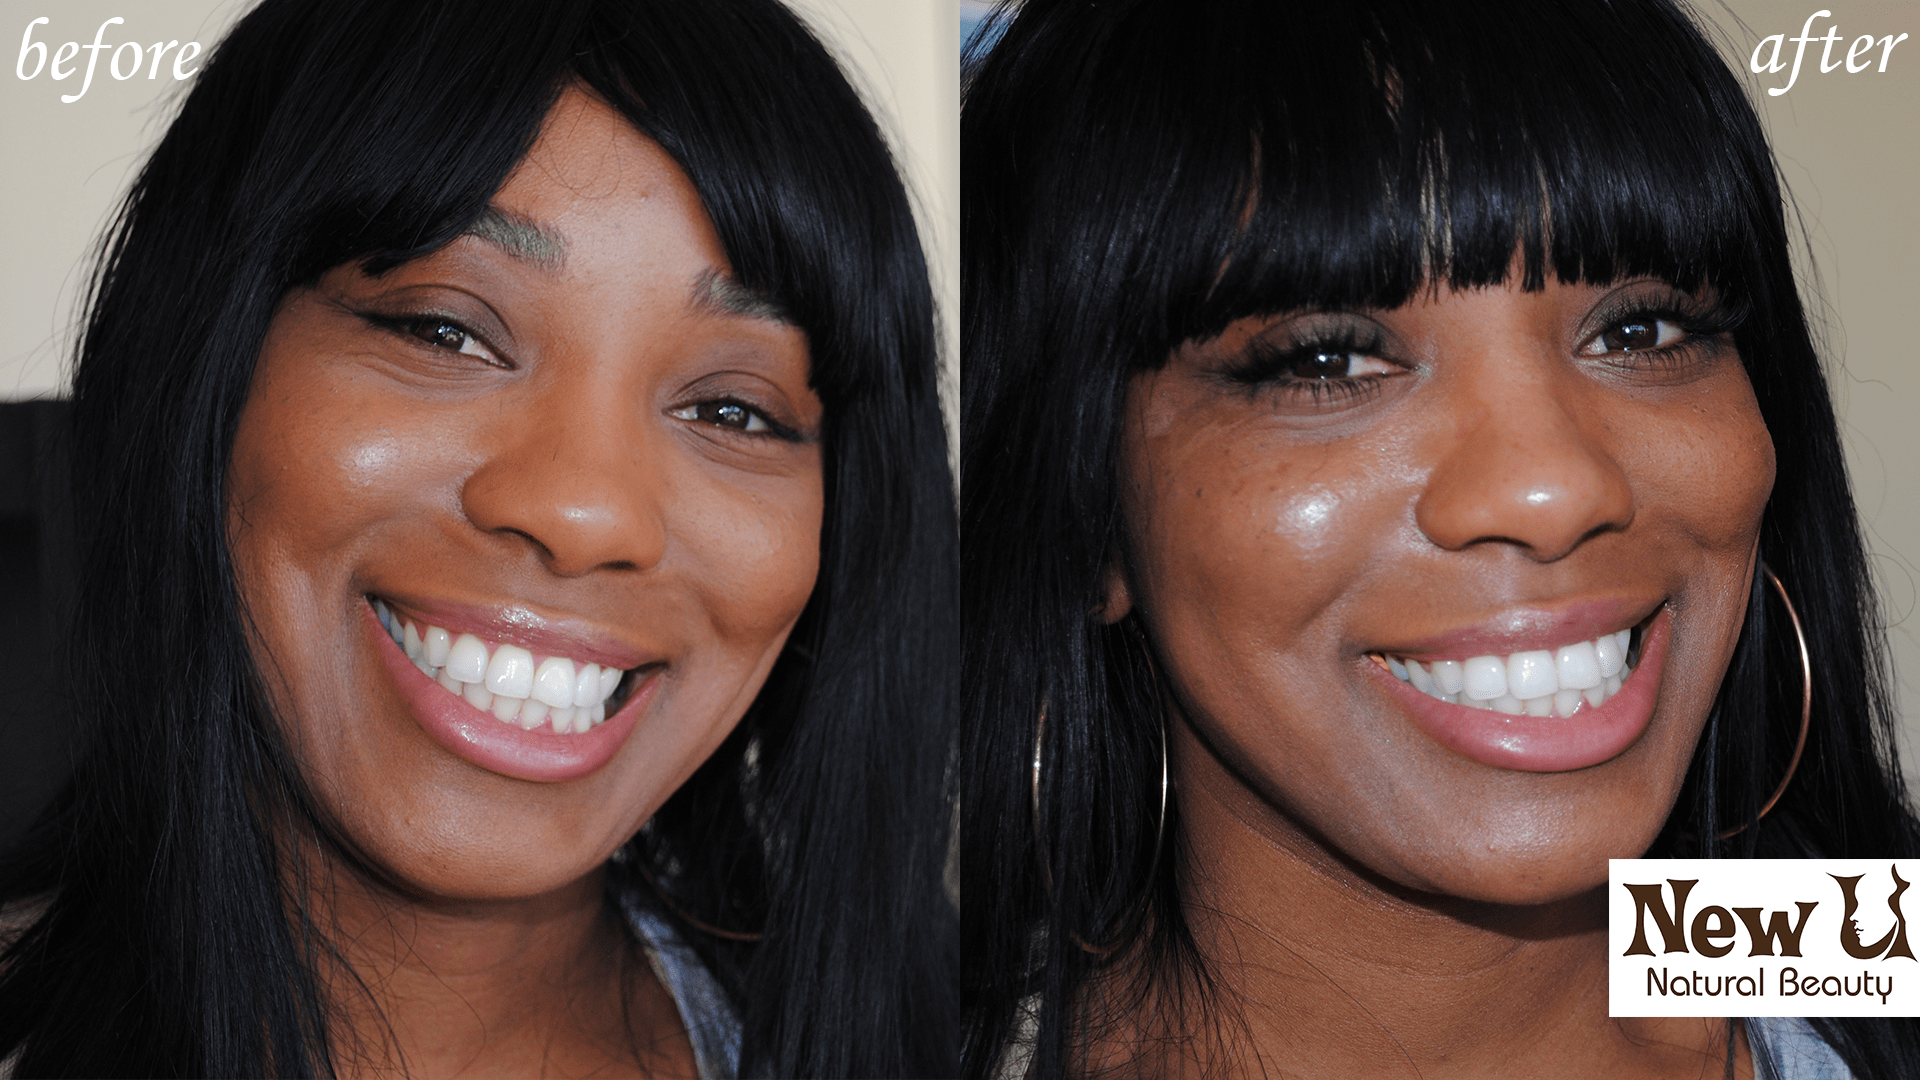 Eyelash Extensions 2 Las Vegas Before and After